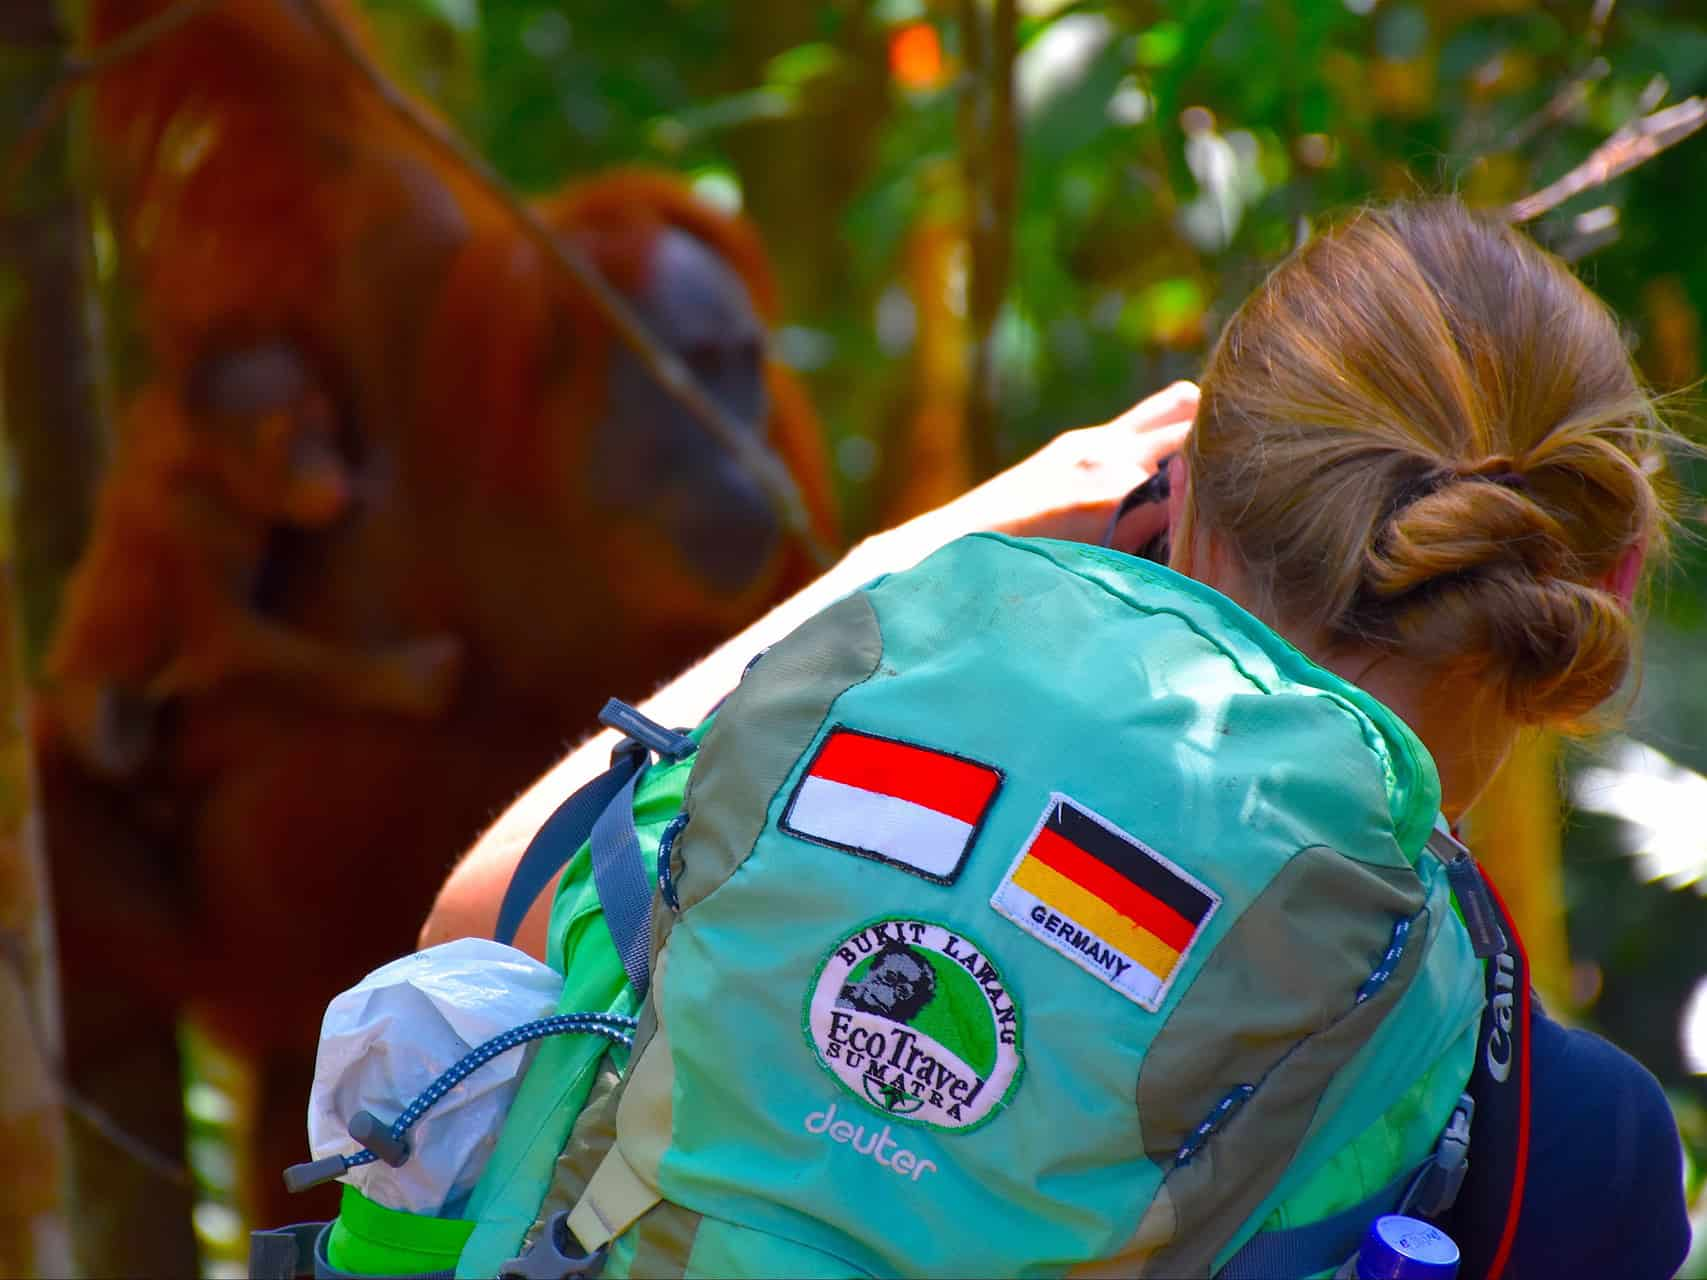 ORANGUTAN TREK - BUKIT LAWANG JUNGLE TREKKING - SUMATRA TRAVEL TIPS - BY SUMATRA ECOTRAVEL